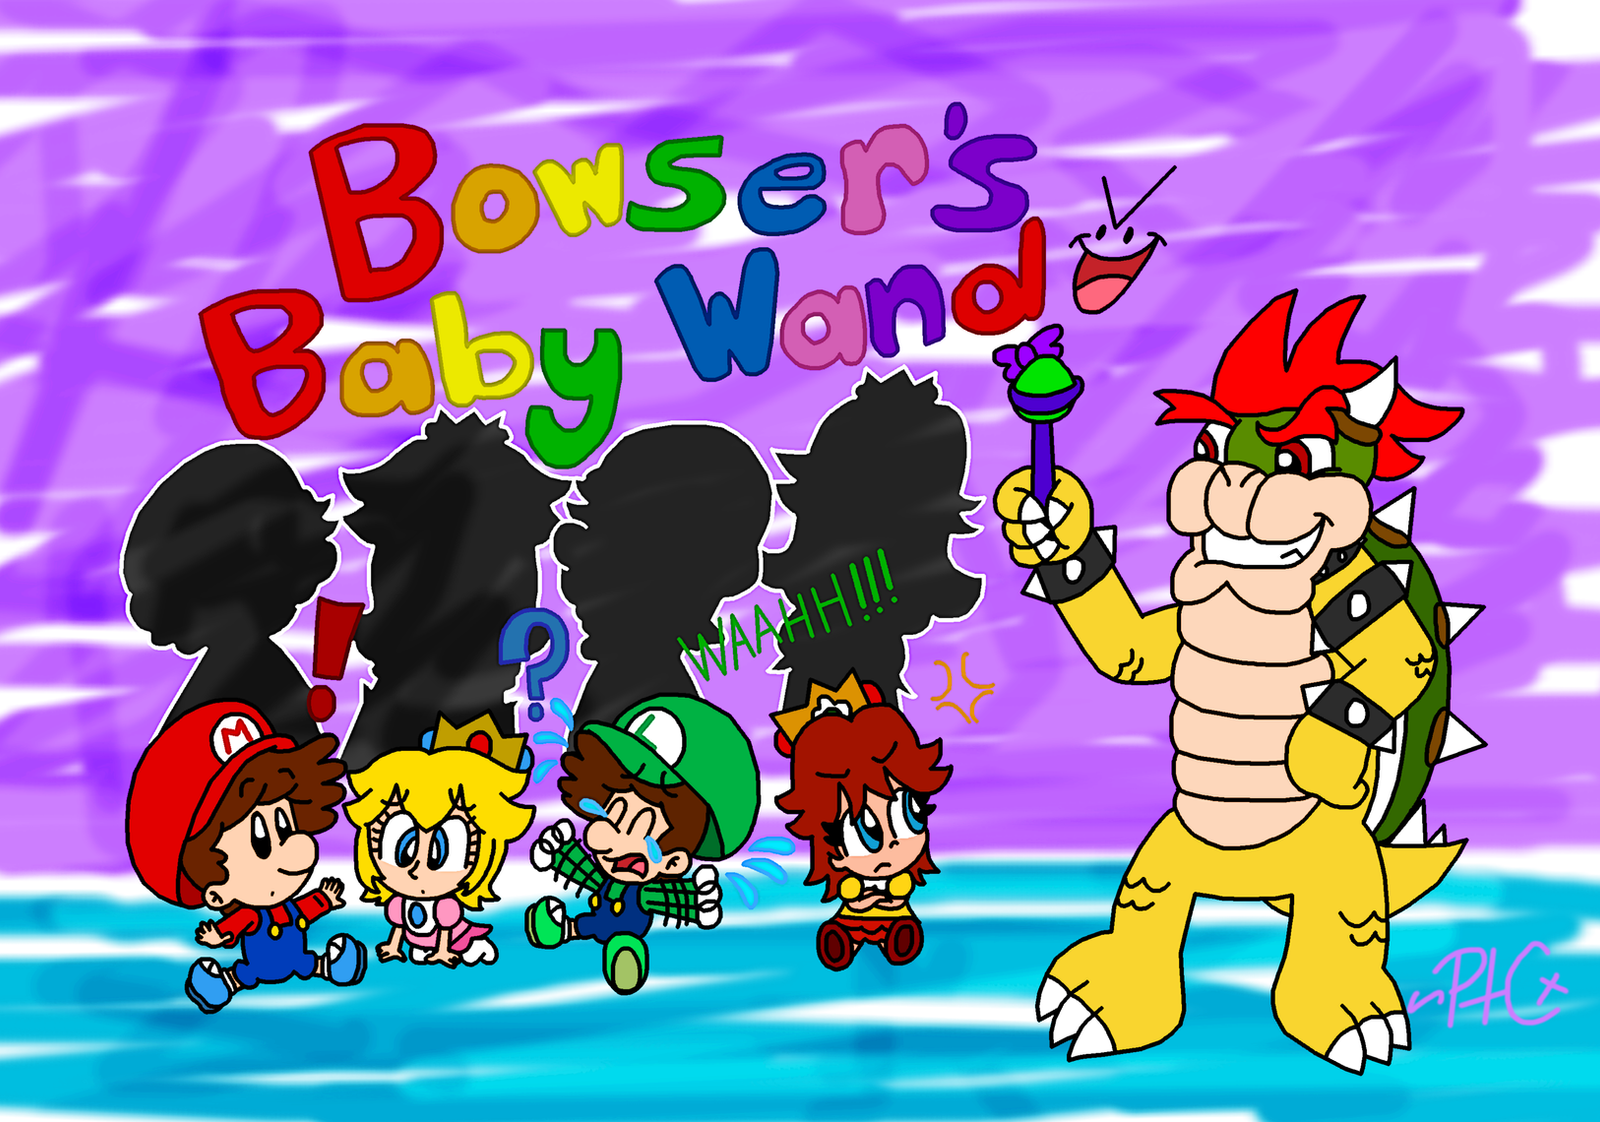 Bowser's Baby Wand by paratroopaCx